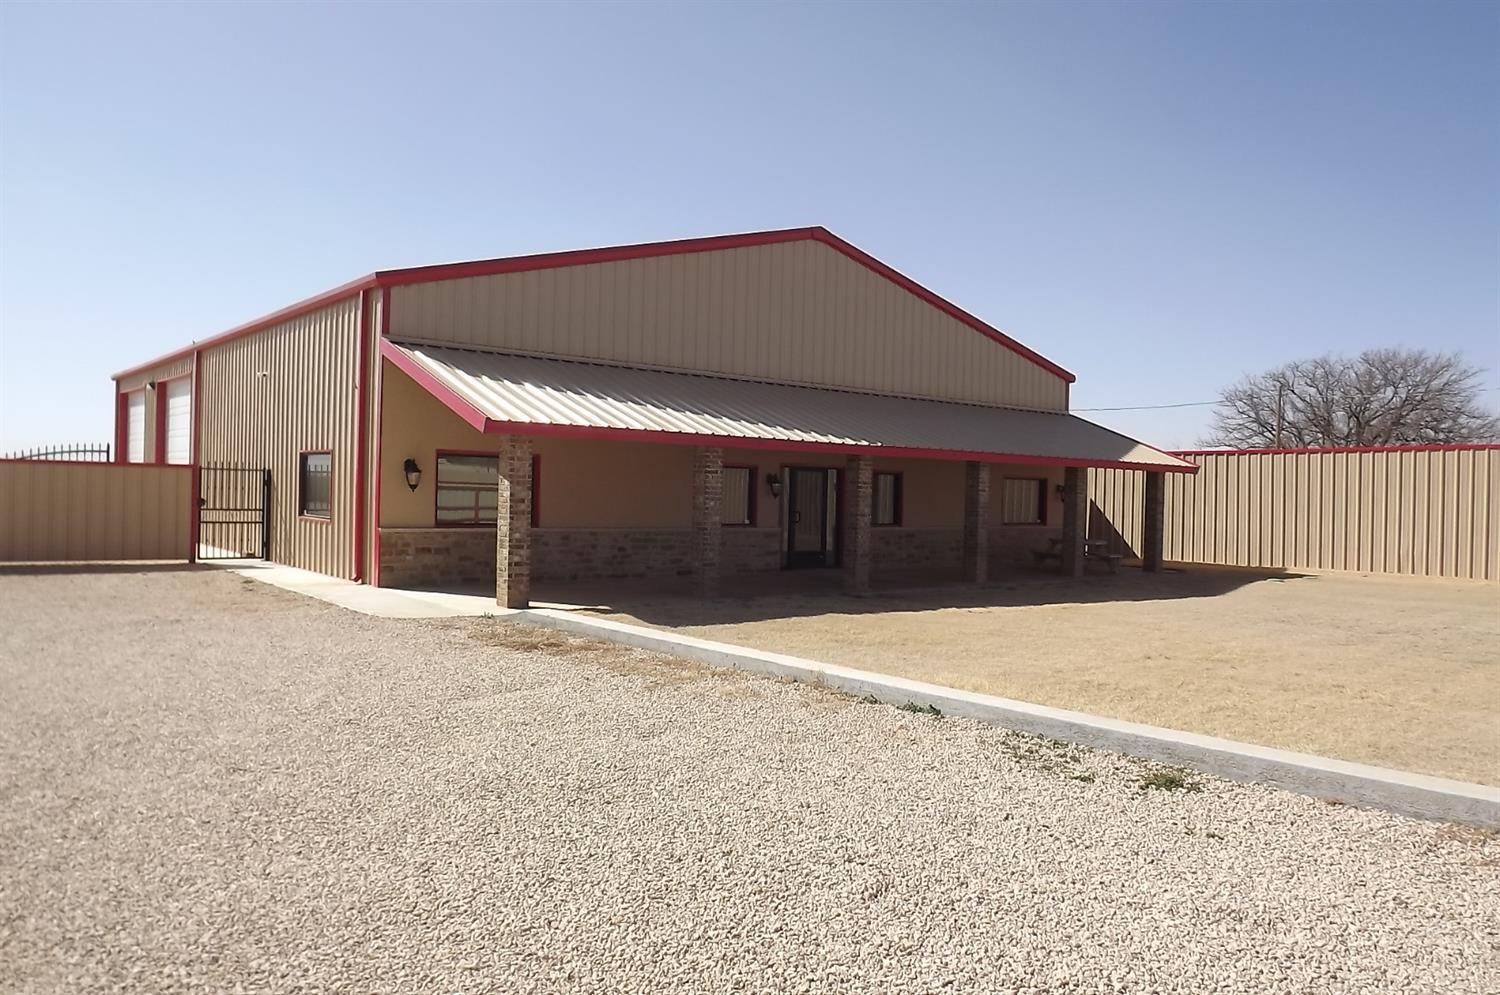 A 4800 SF Office/Warehouse like new (built 2018) on 1 Acre with crushed rock stack-parking lot,    completely fenced with automatic gate, 3-14' overhead doors with openers, Private well and septic with front yard irrigation, Offices, conference room build-out complete w/ granite countertops, built-ins, insulated shop, epoxy concrete floors in both shop office and shop. Led lights, RV hookups, 30-50 Amp service. This is super nice and close to I-27 and Lubbock Executive Airport.